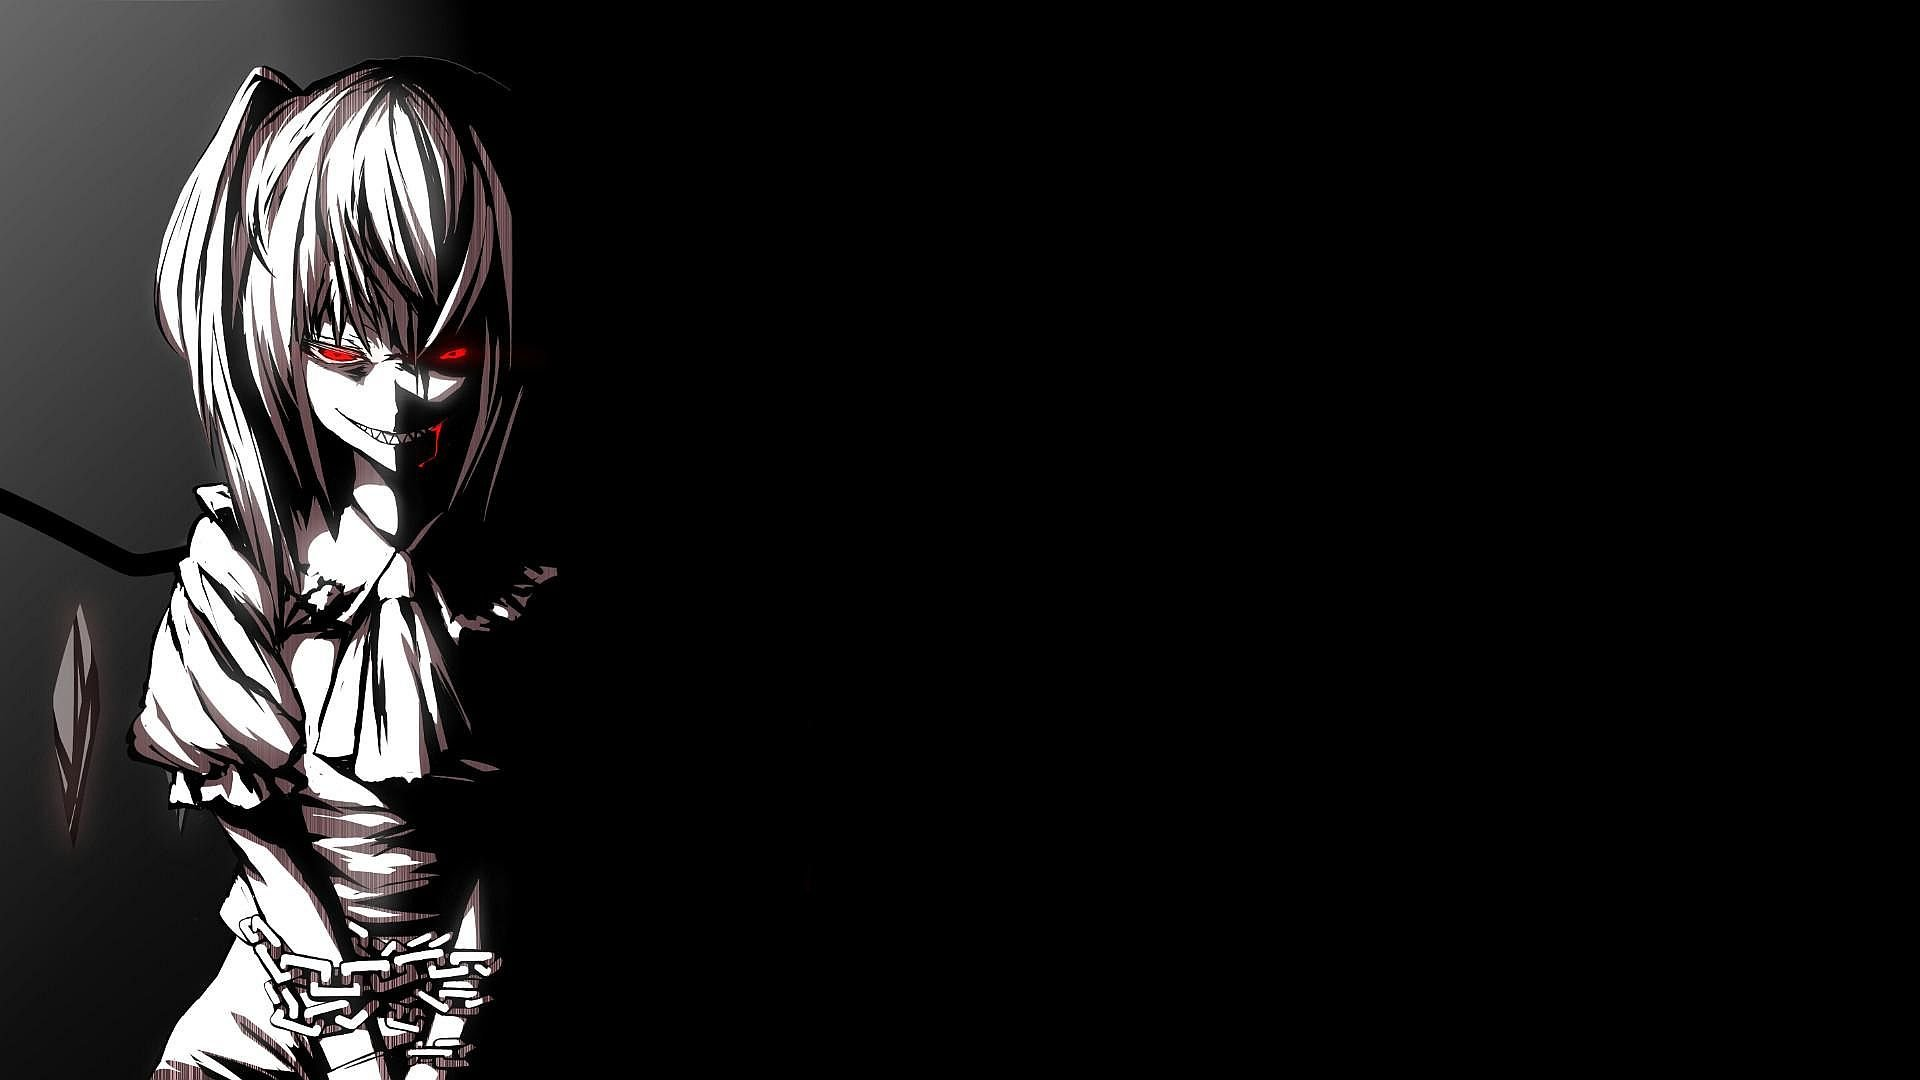 Download 52 Koleksi Background Anime Hantu Paling Keren